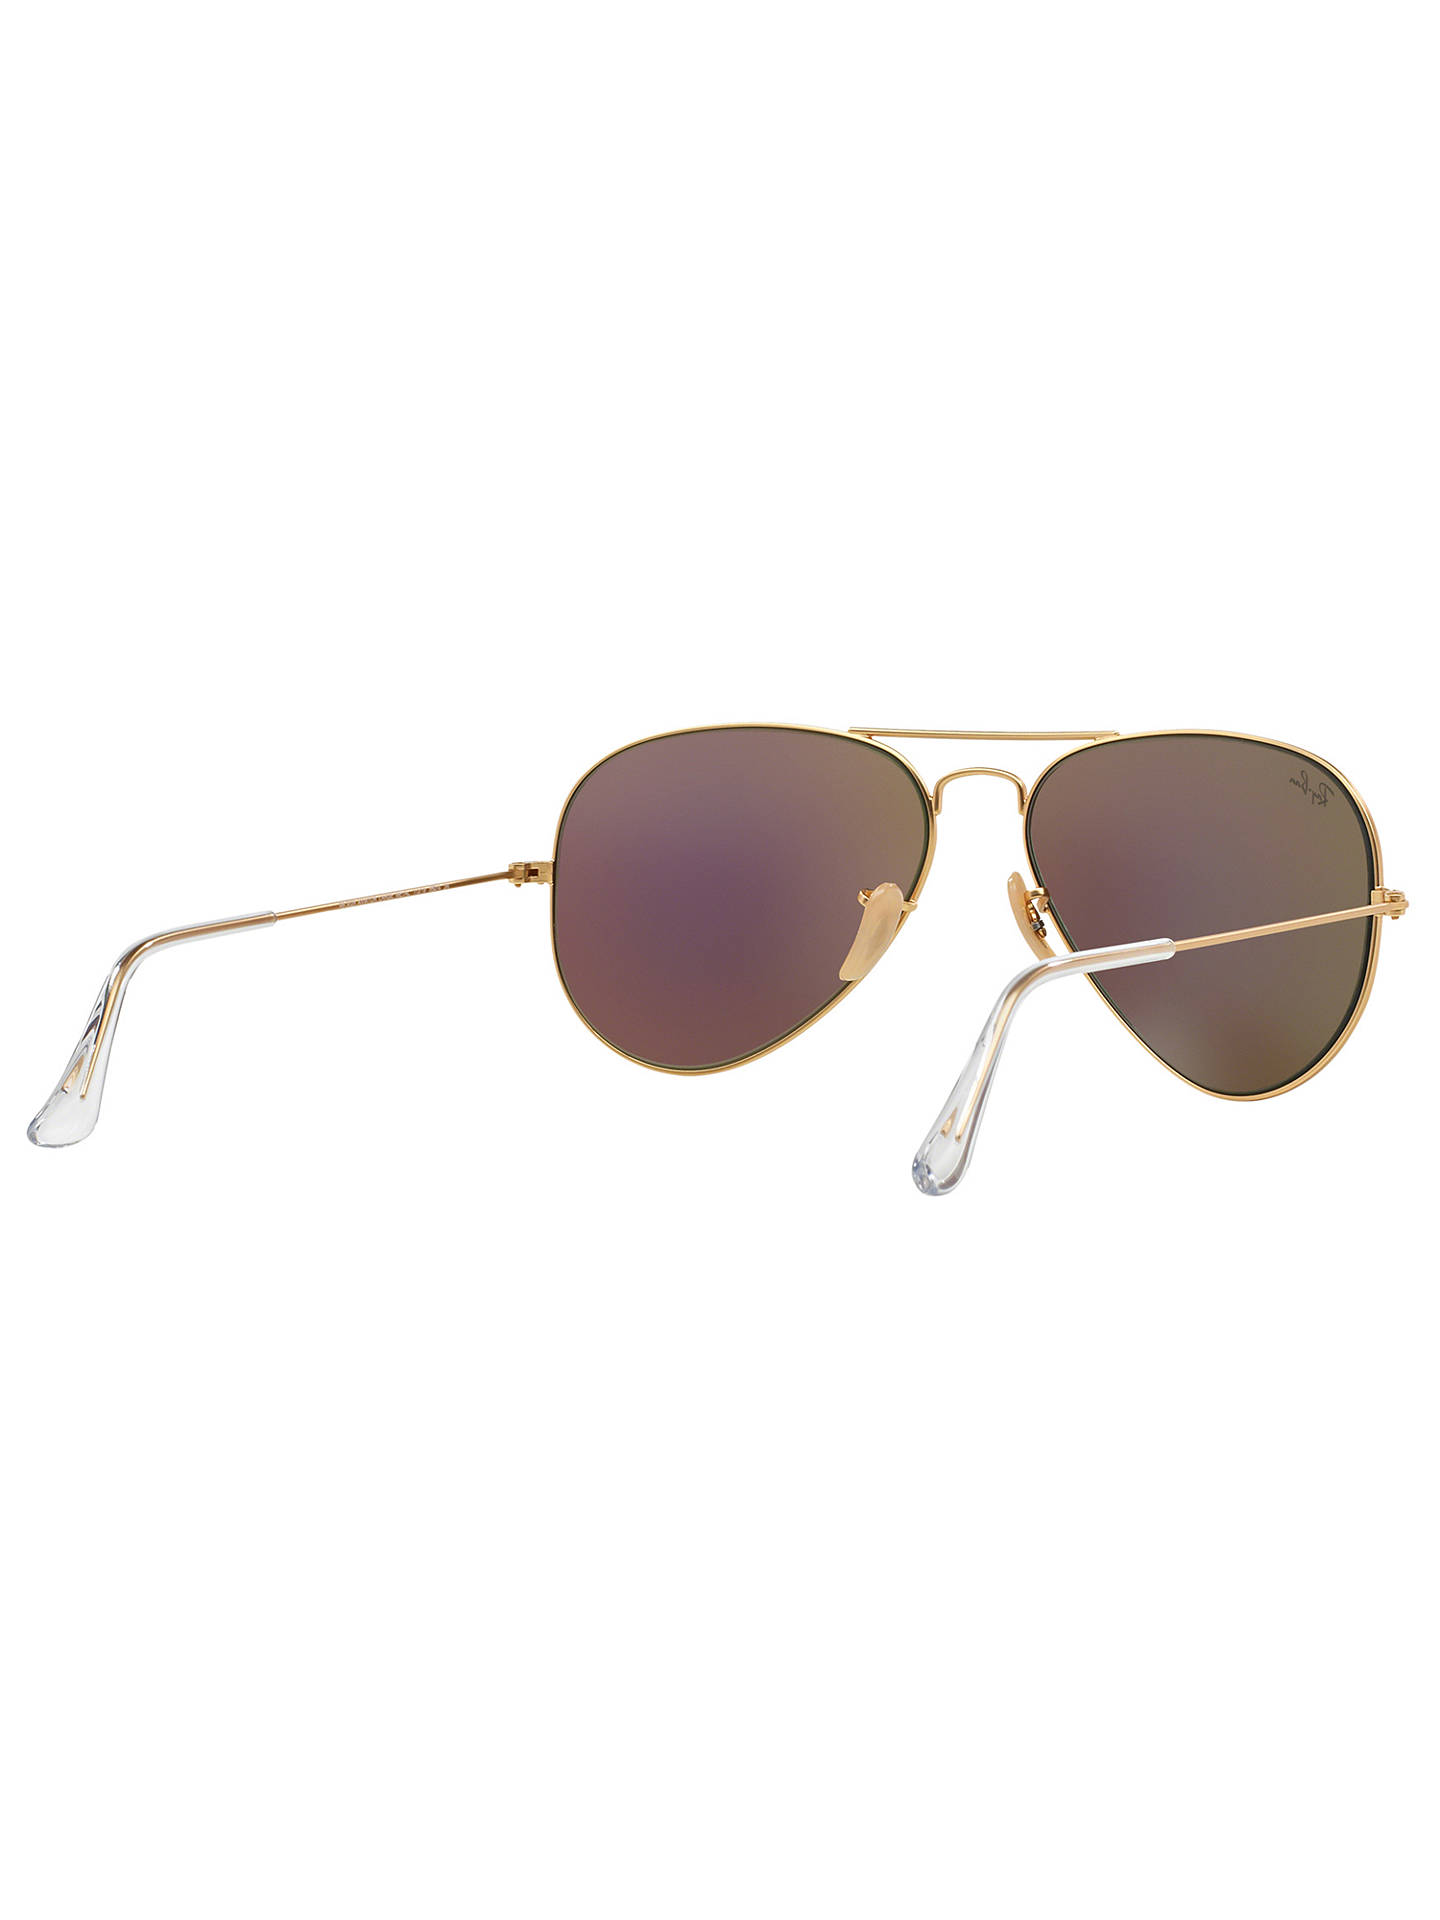 Buy Ray-Ban RB3025 Aviator Sunglasses, Gold/Green Online at johnlewis.com